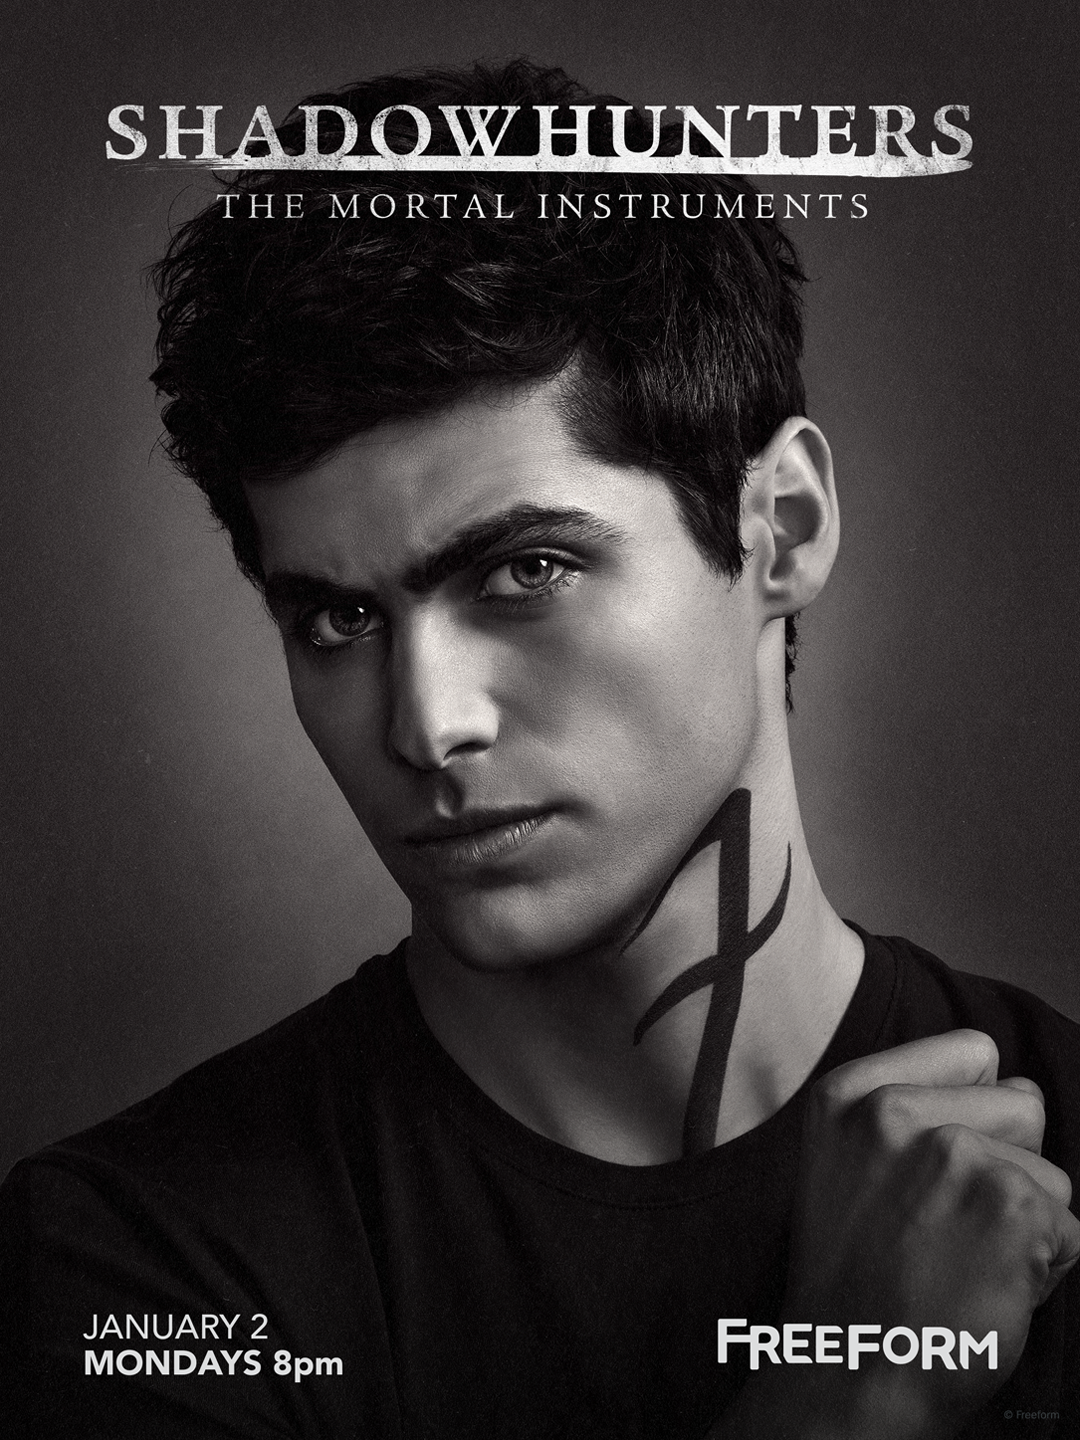 Shadowhunters - Unlock The Official Alec Poster For Season 2 By Tweeting Us With This Hashtag! - 1002